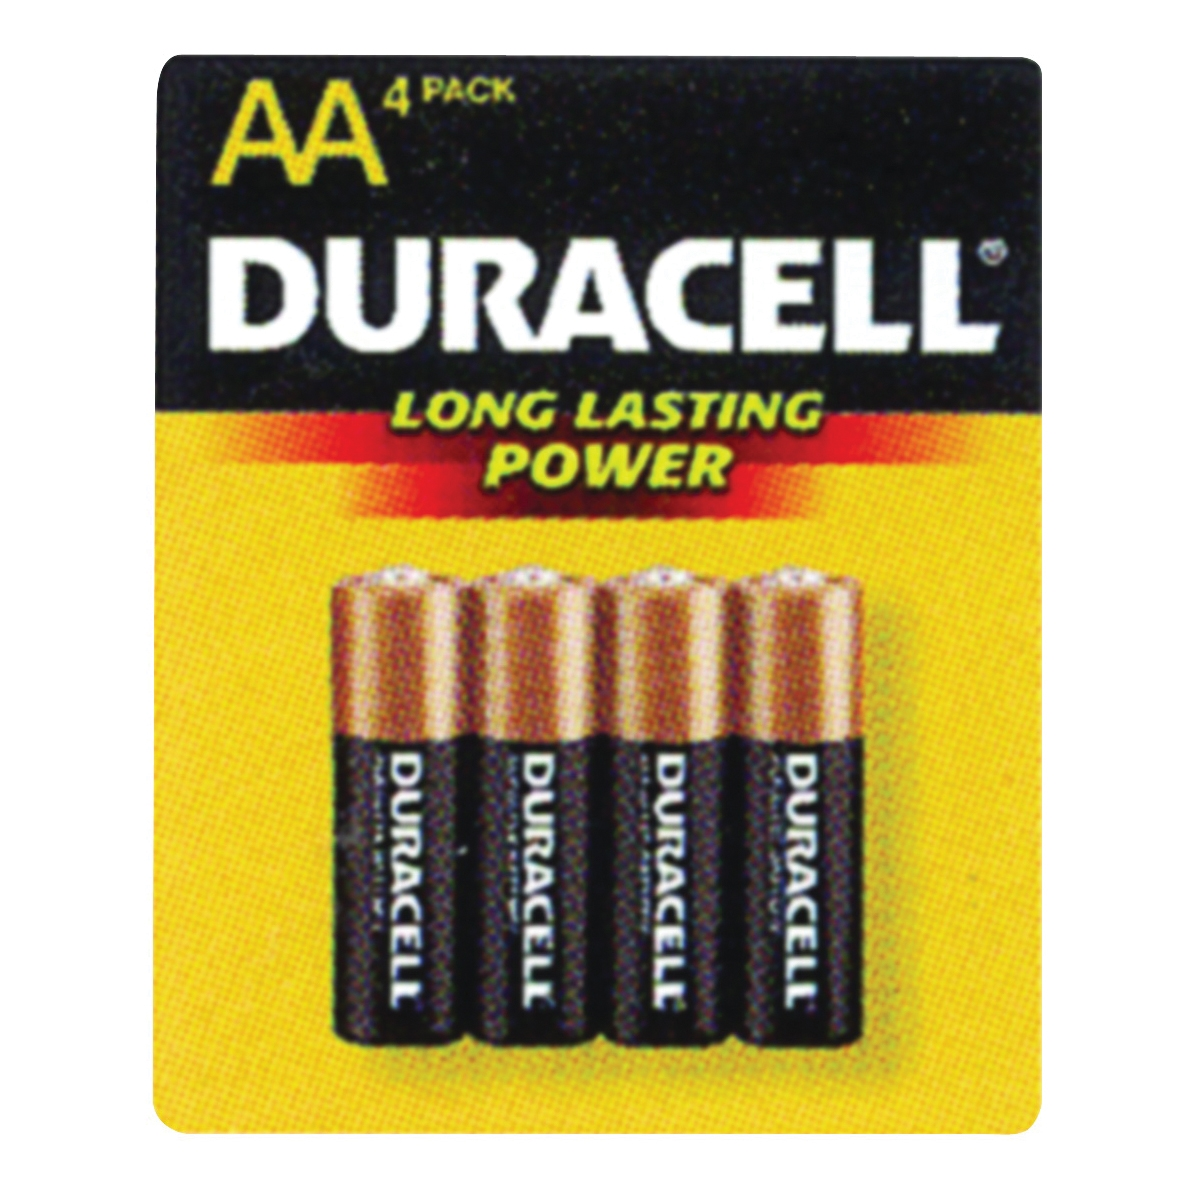 Picture of DURACELL COPPERTOP MN1500 Series MN1500B4Z Alkaline Battery, 1.5 V Battery, AA Battery, Manganese Dioxide